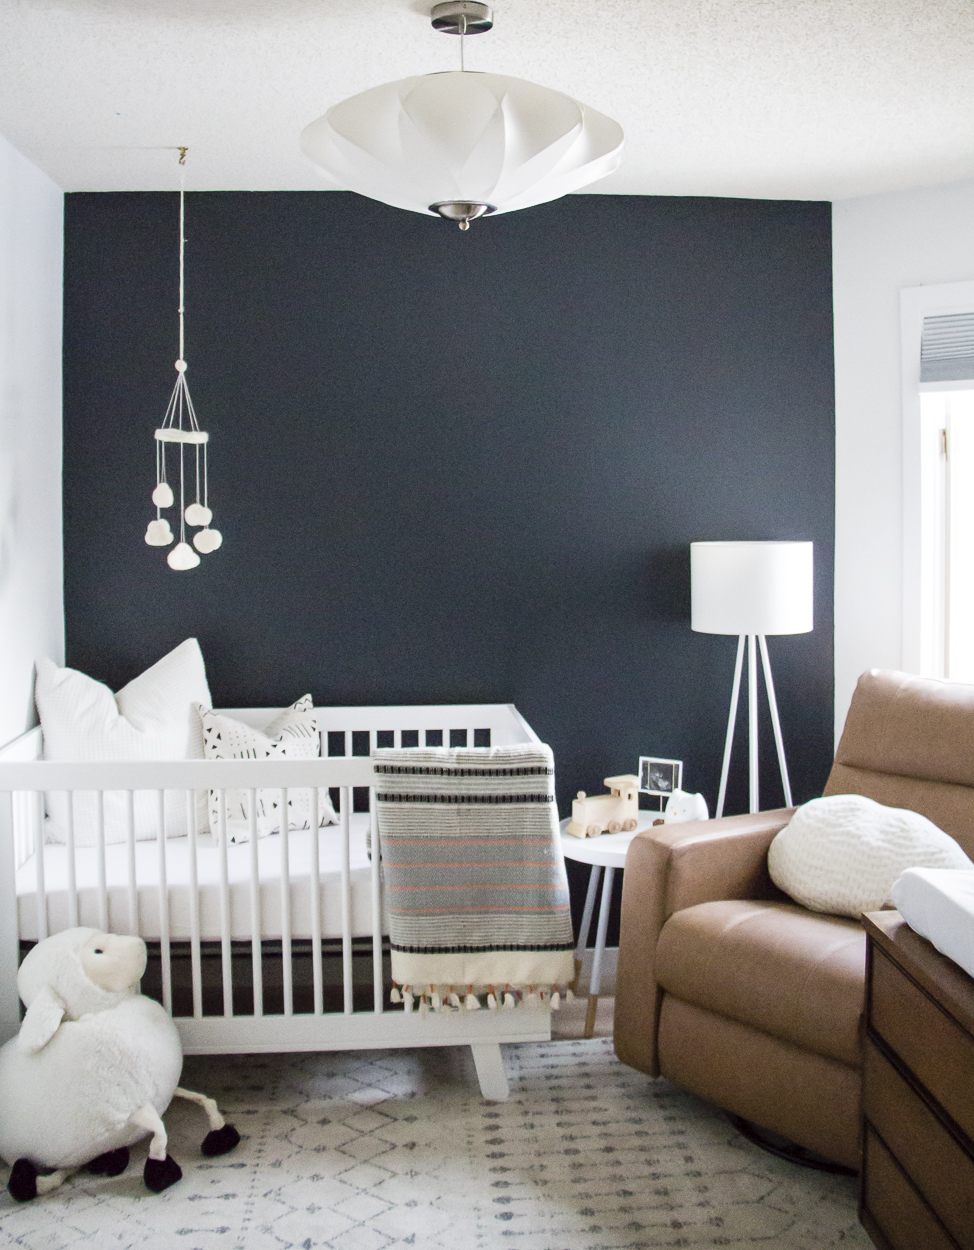 Oh baby jack 39 s sweet simple nursery reveal kristina lynne for Simple nursery design